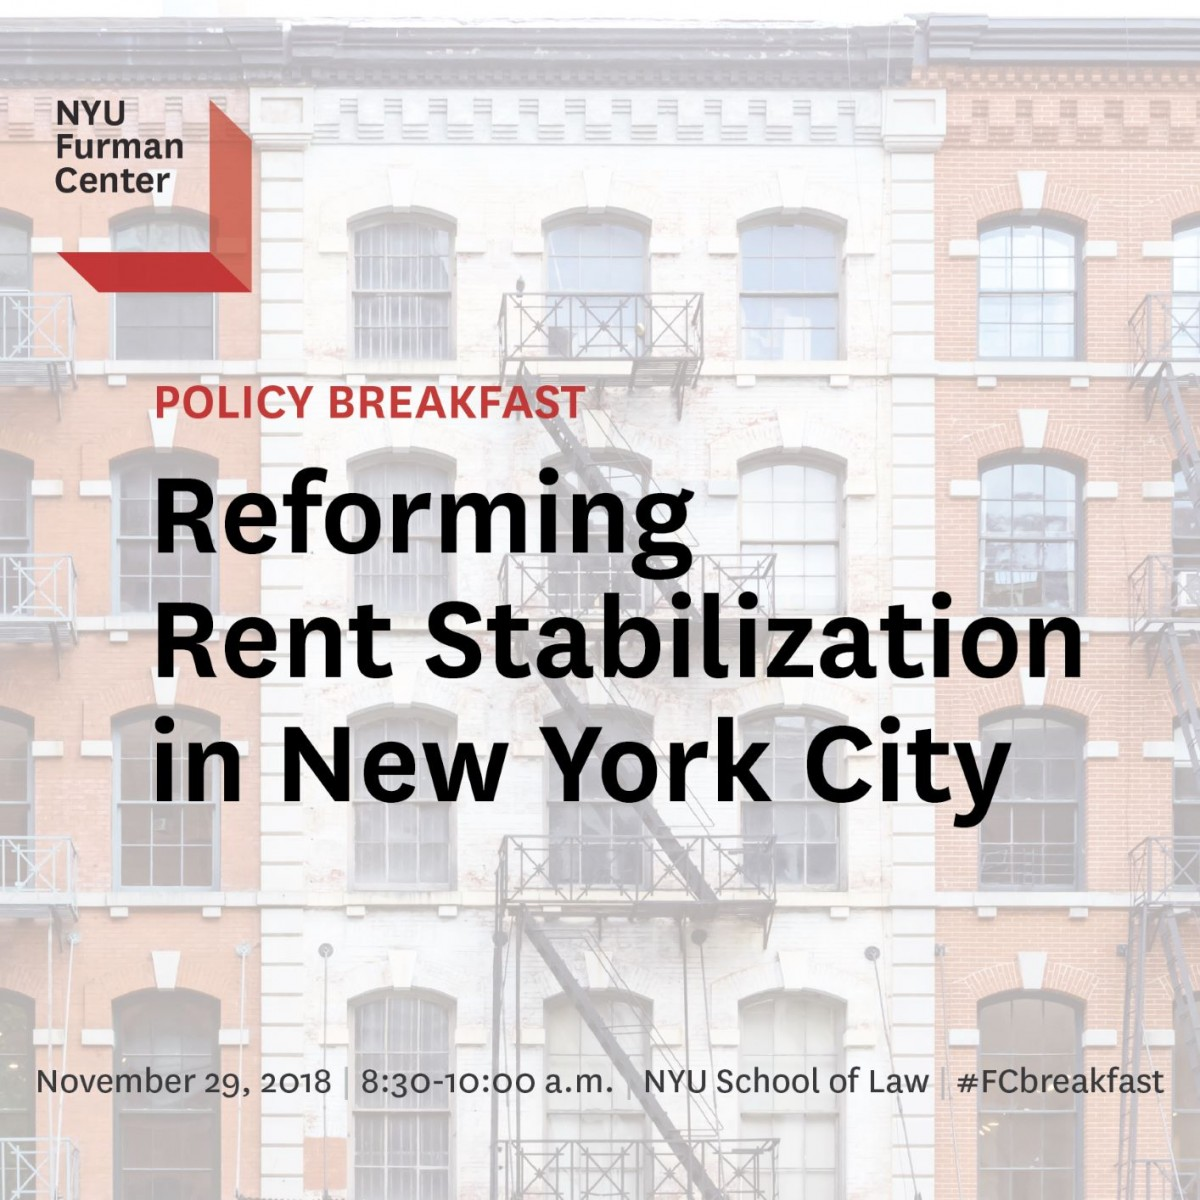 Rent In New York: VIDEO: Policy Breakfast On Reforming Rent Stabilization In